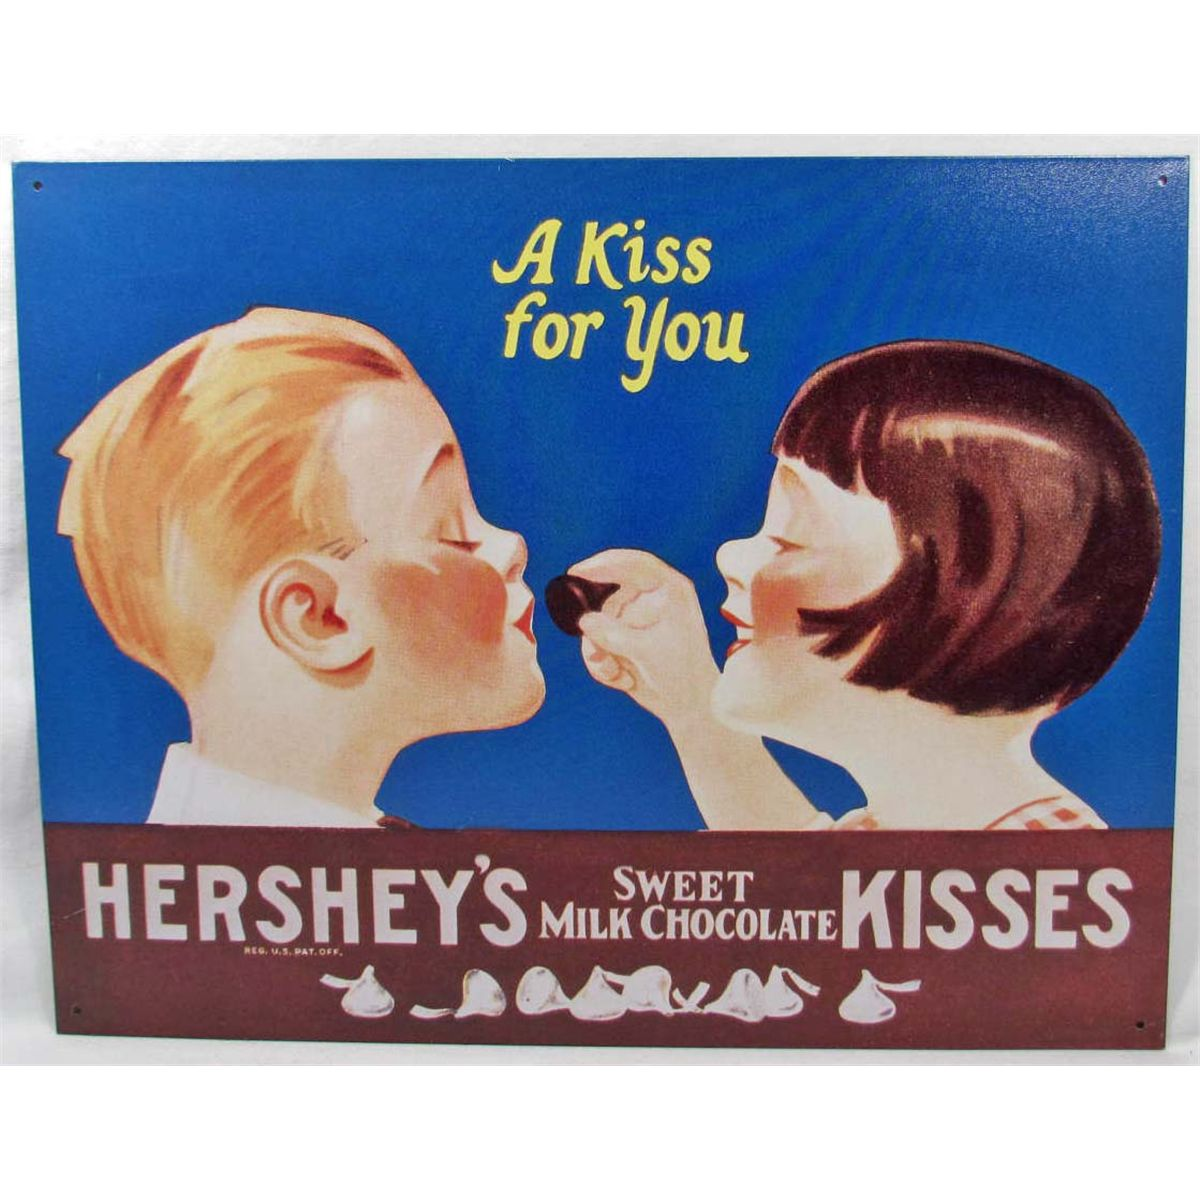 "2694 - 16""x12"" - HERSHEY'S SWEET MILK CHOCOLATE KISSES - METAL ADVERTISING  SIGN"